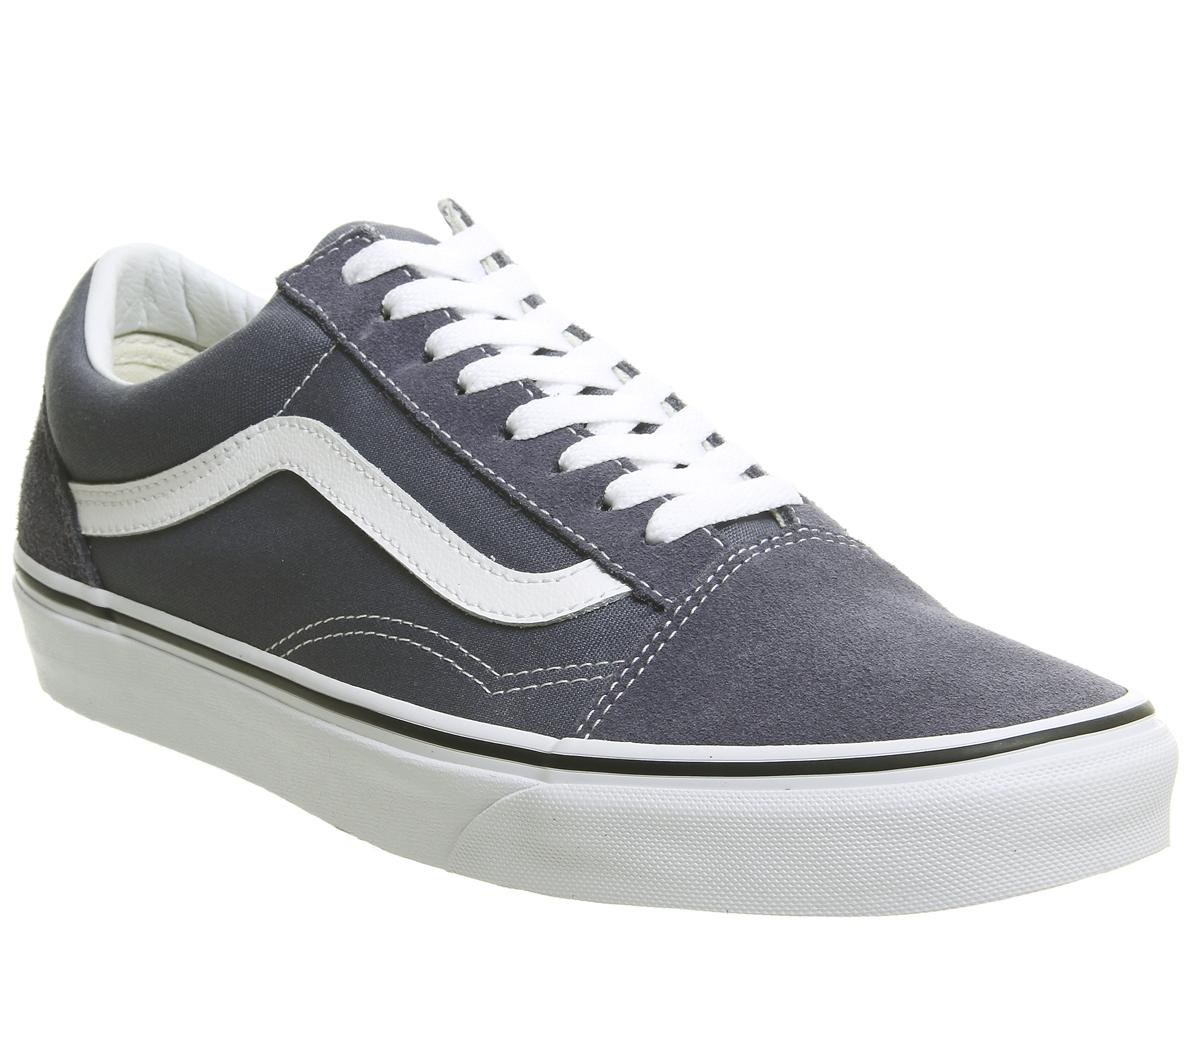 Vans Old Skool Trainers Grisaille White